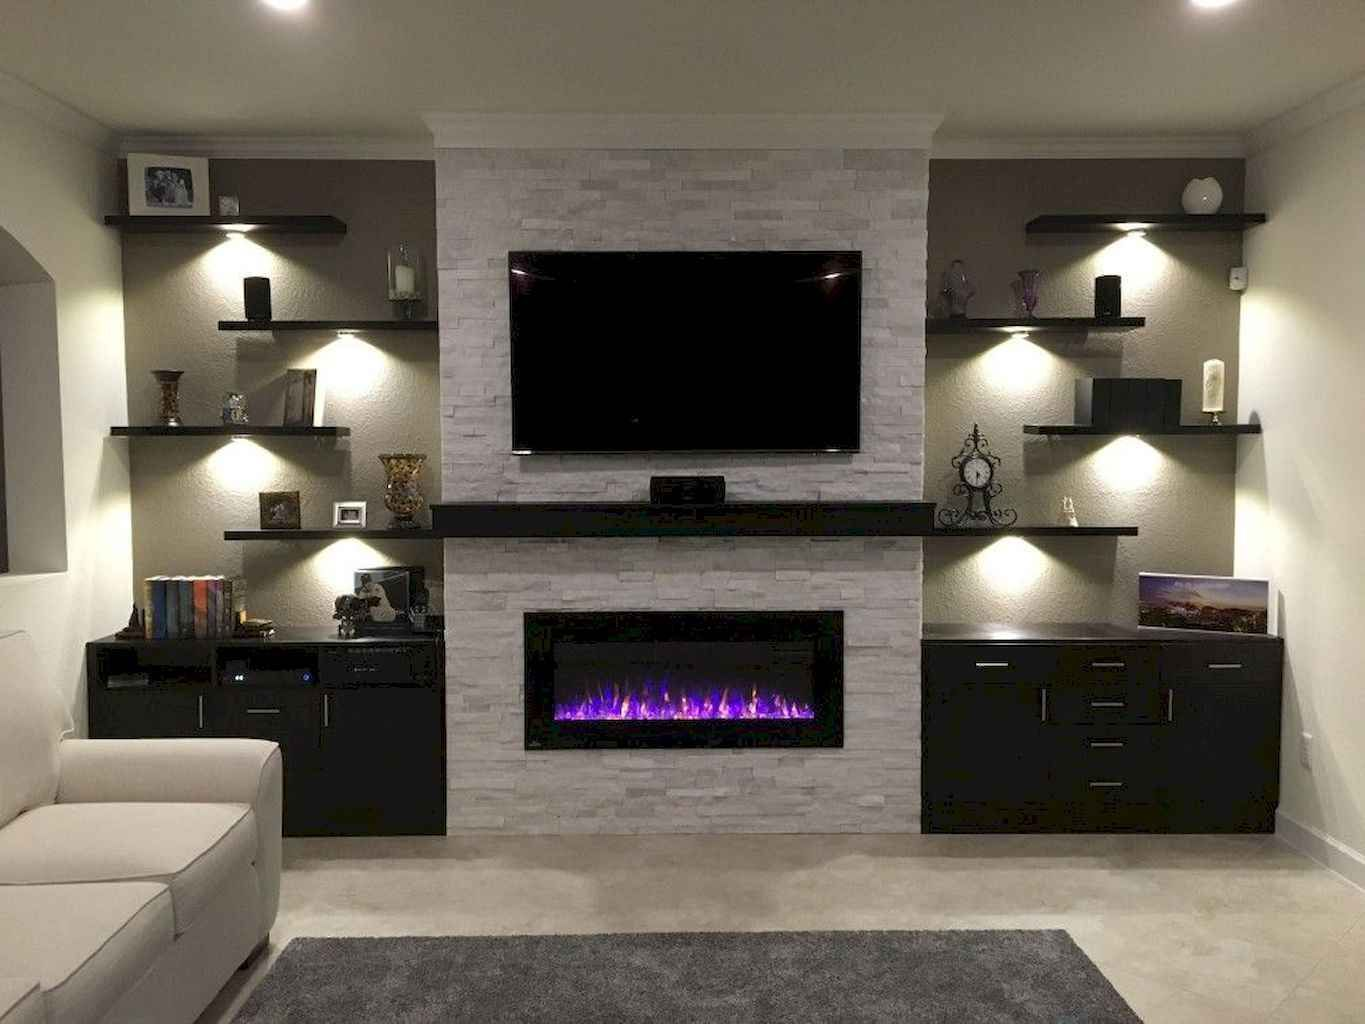 50 Diy Floating Shelves For Living Room Decorating Gladecor Com Trendy Living Rooms Living Room With Fireplace Living Room Tv Wall